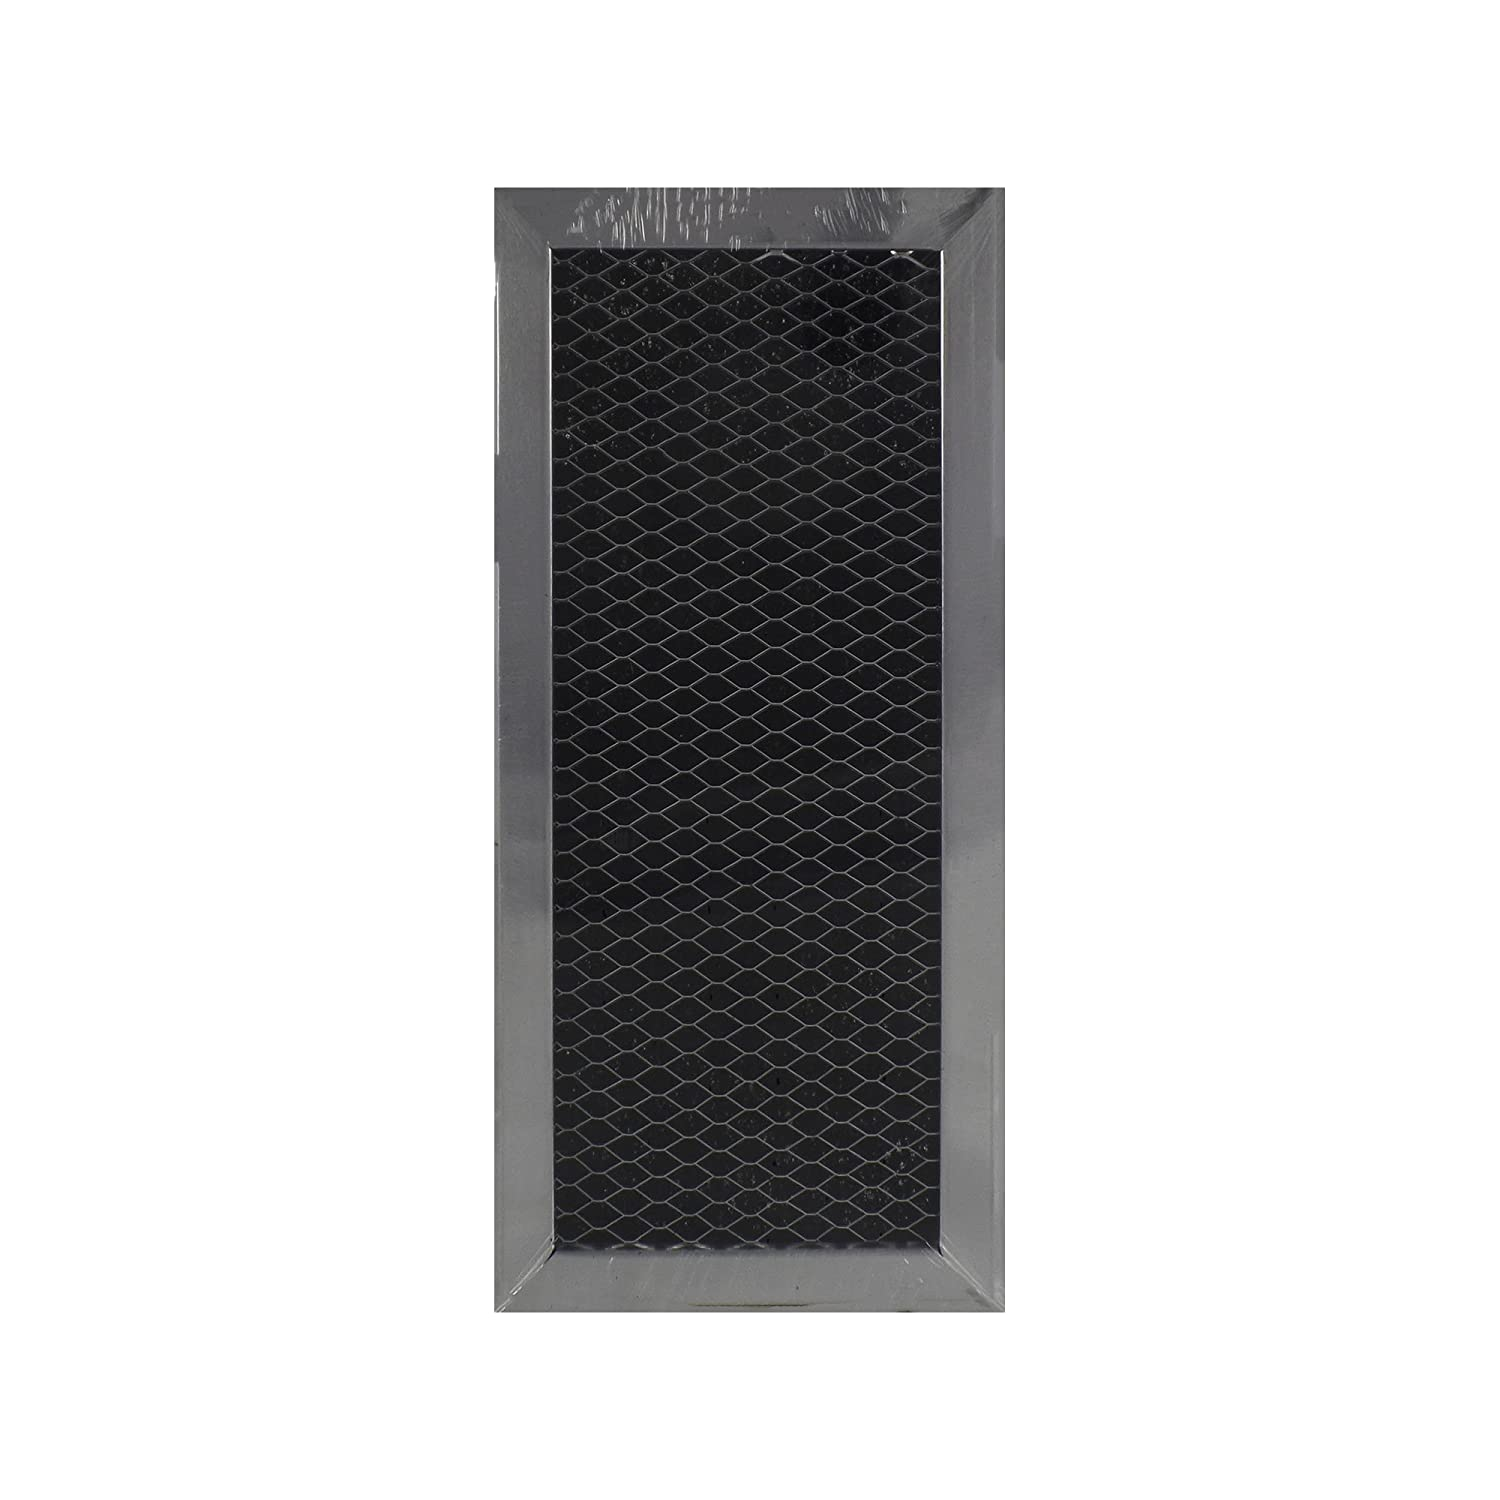 "Air Filter Factory Compatible Replacement for Samsung DE63-00367D, DE63-00367H, DE63-30016D Charcoal Carbon Microwave Oven Filter 4"" x 8-9/16"" x 3/8"" AFF49-CH"